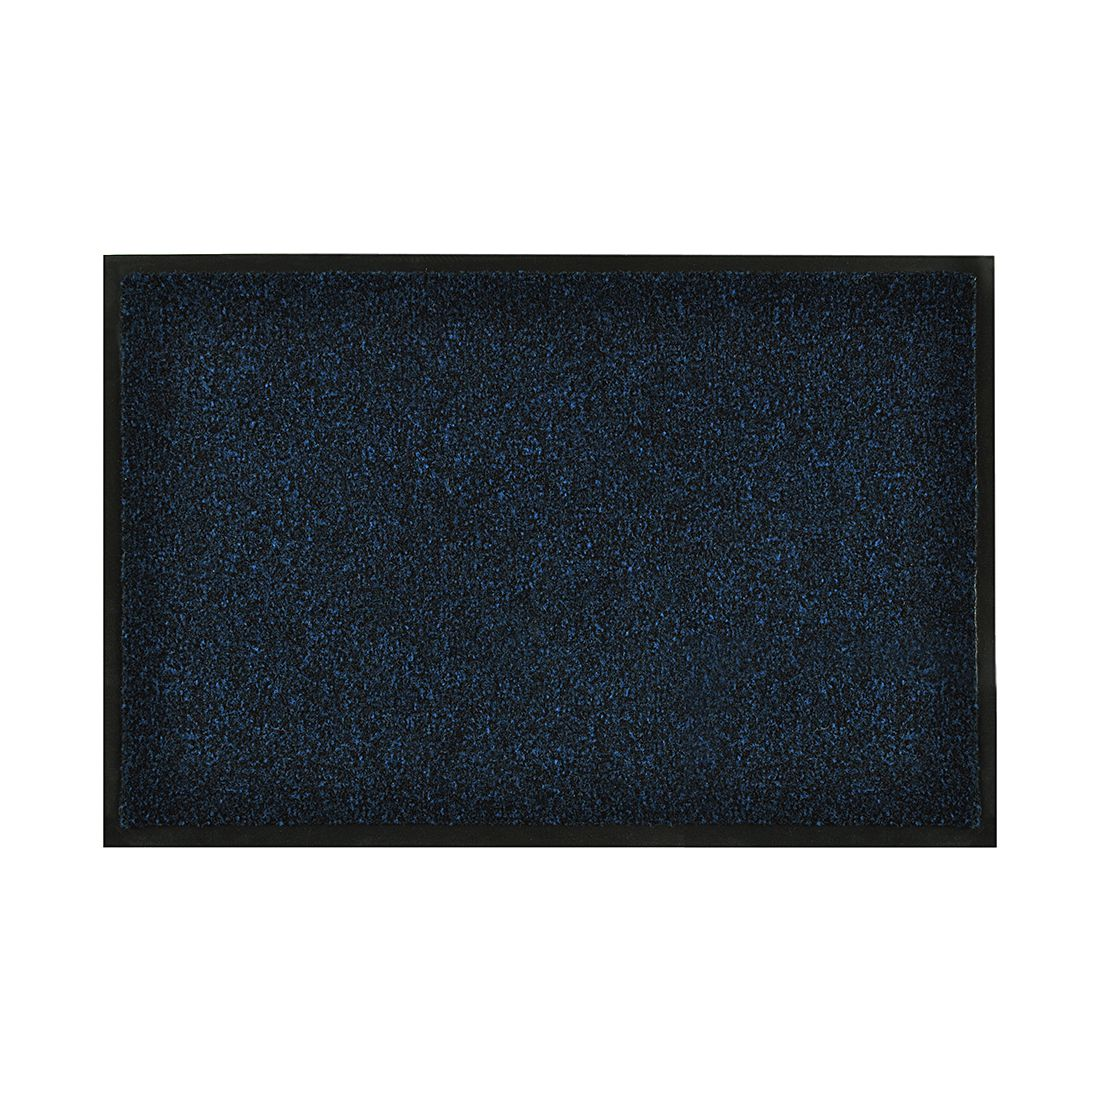 Deurmat Green en Clean - blauw - maat: 40x60cm, Hanse Home Collection